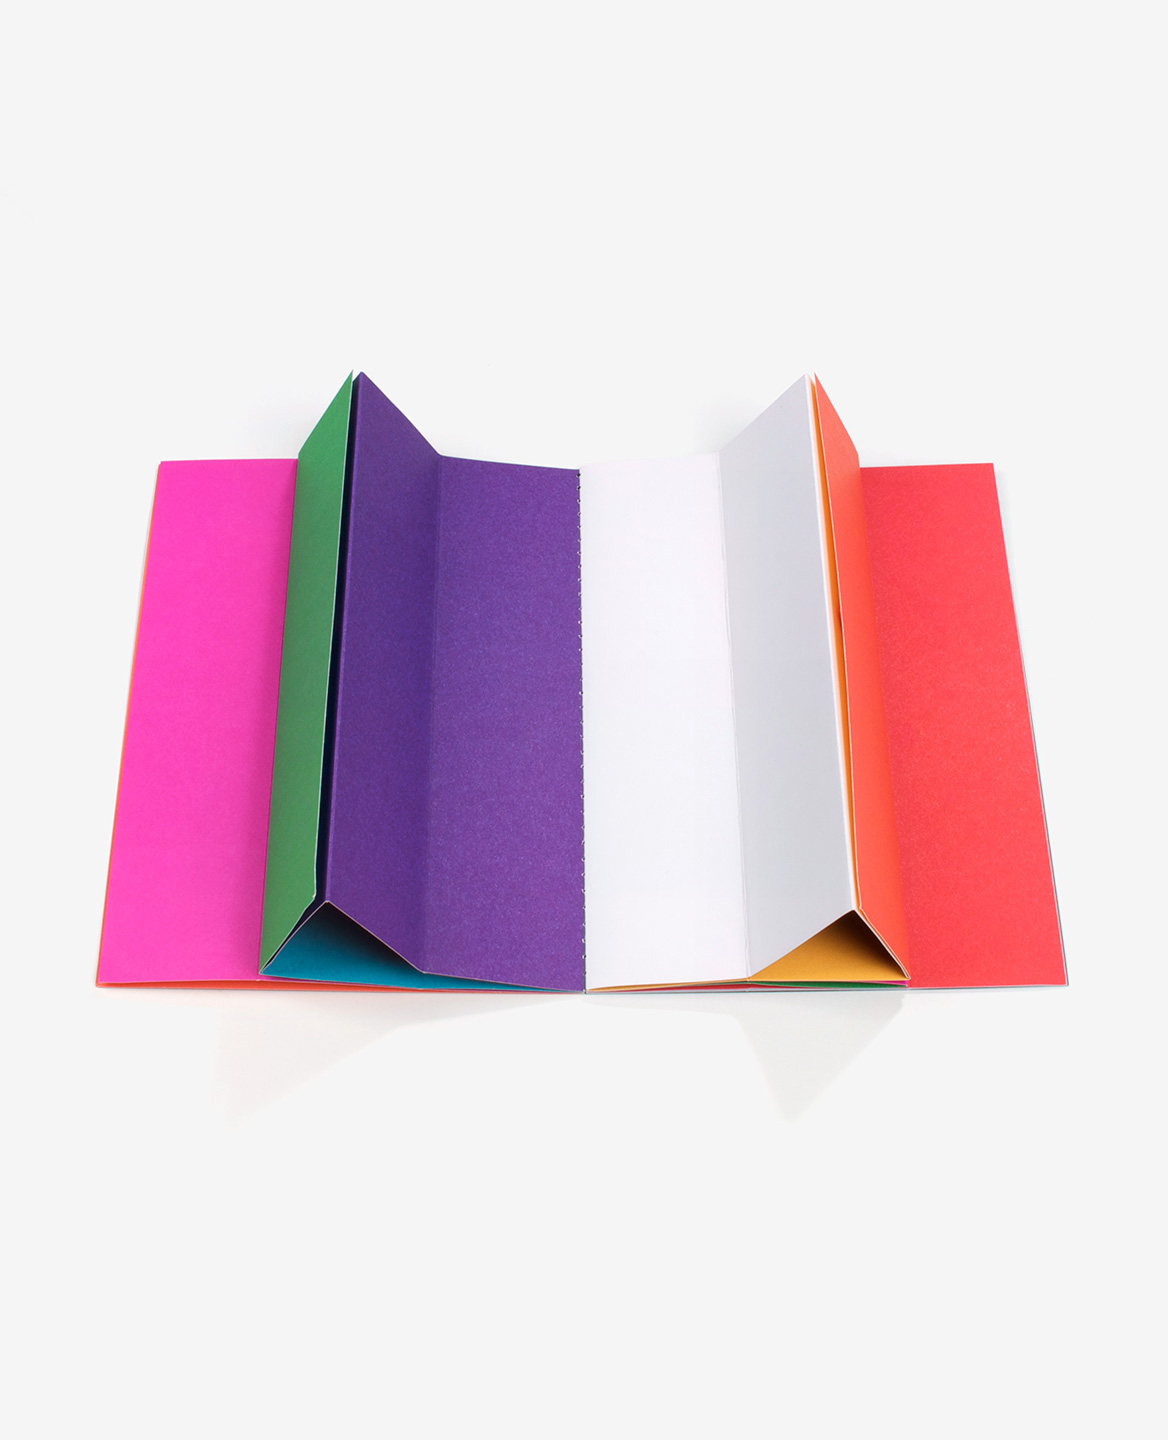 3D view of the book Strips by Antonio Ladrillo